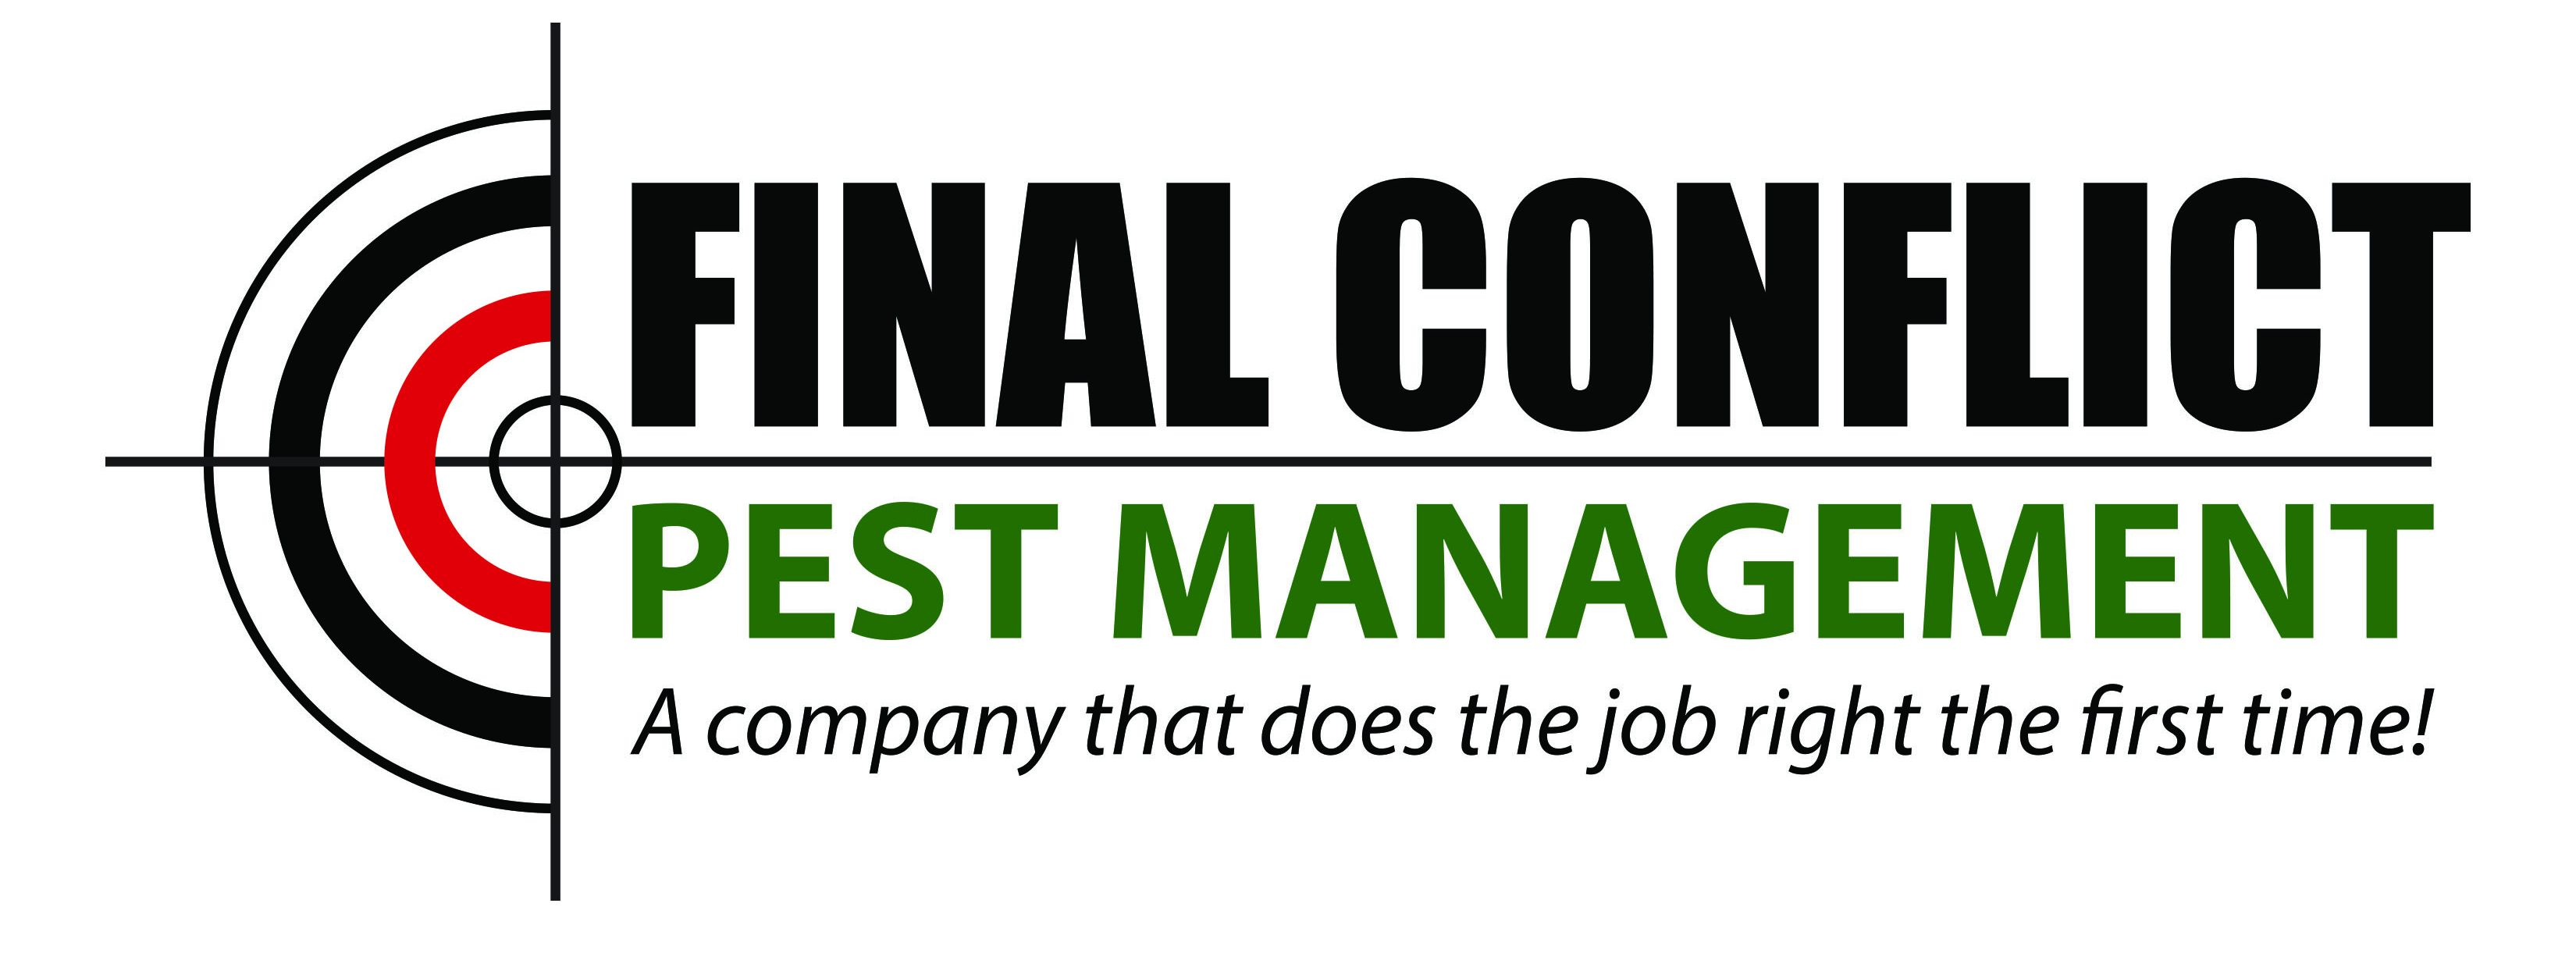 Final Conflict Pest Management